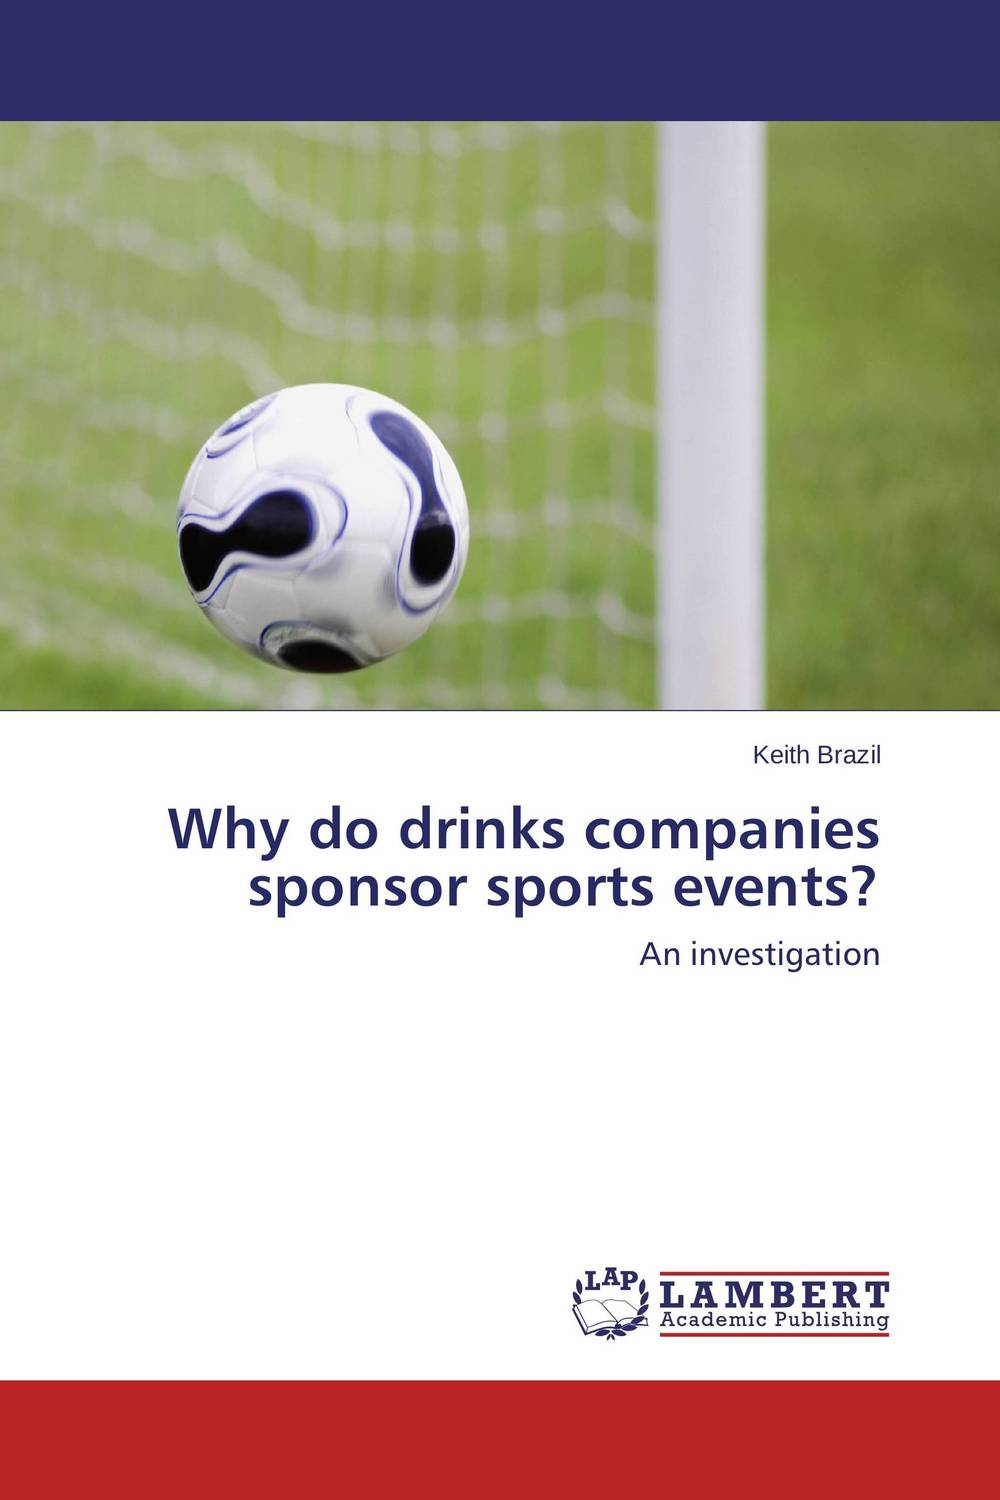 Why do drinks companies sponsor sports events? sponsorship on marketing communication process